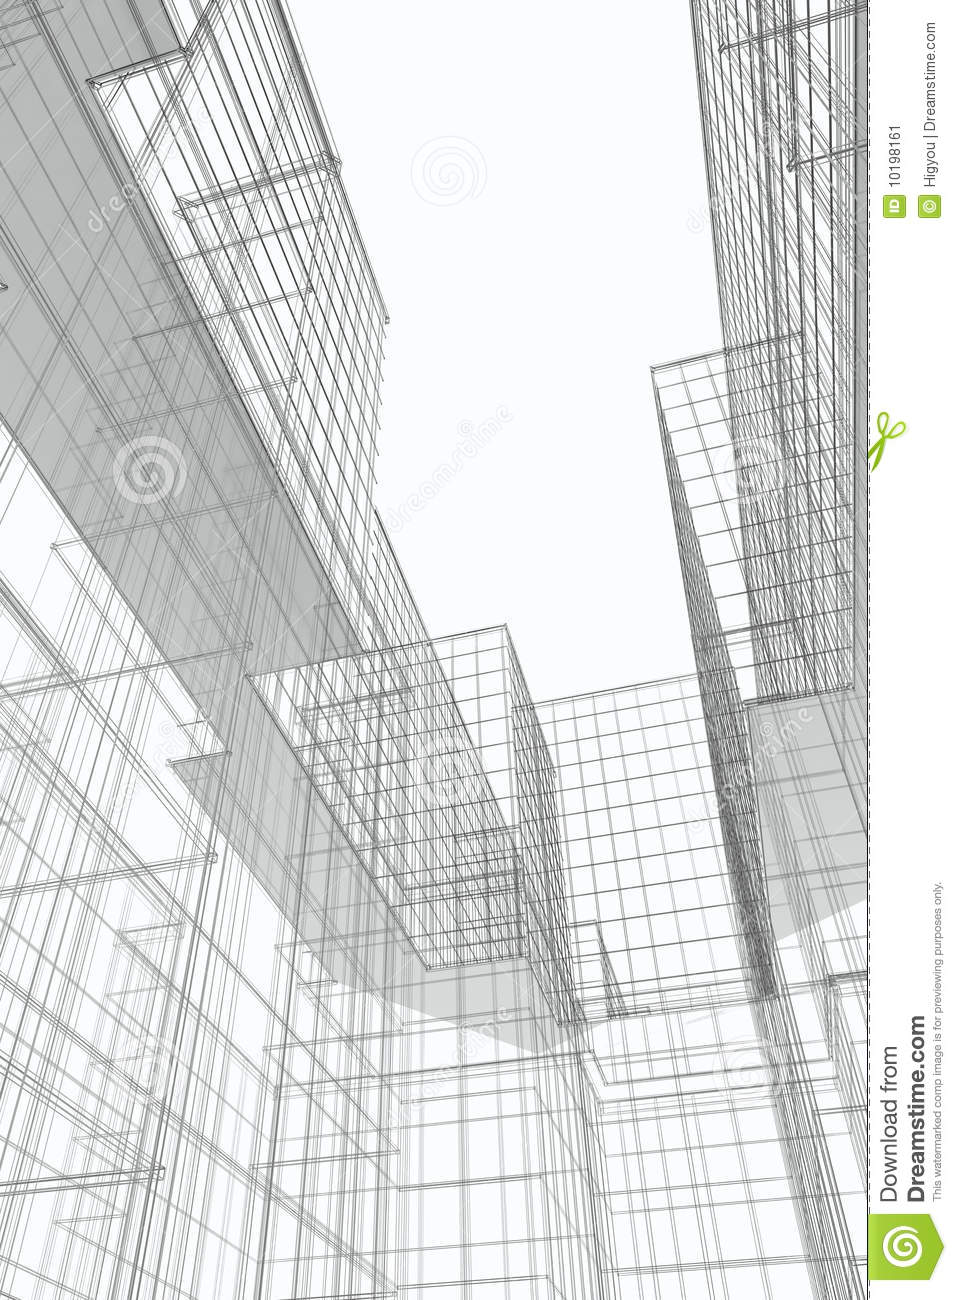 Cour moderne de constructions, Wireframe